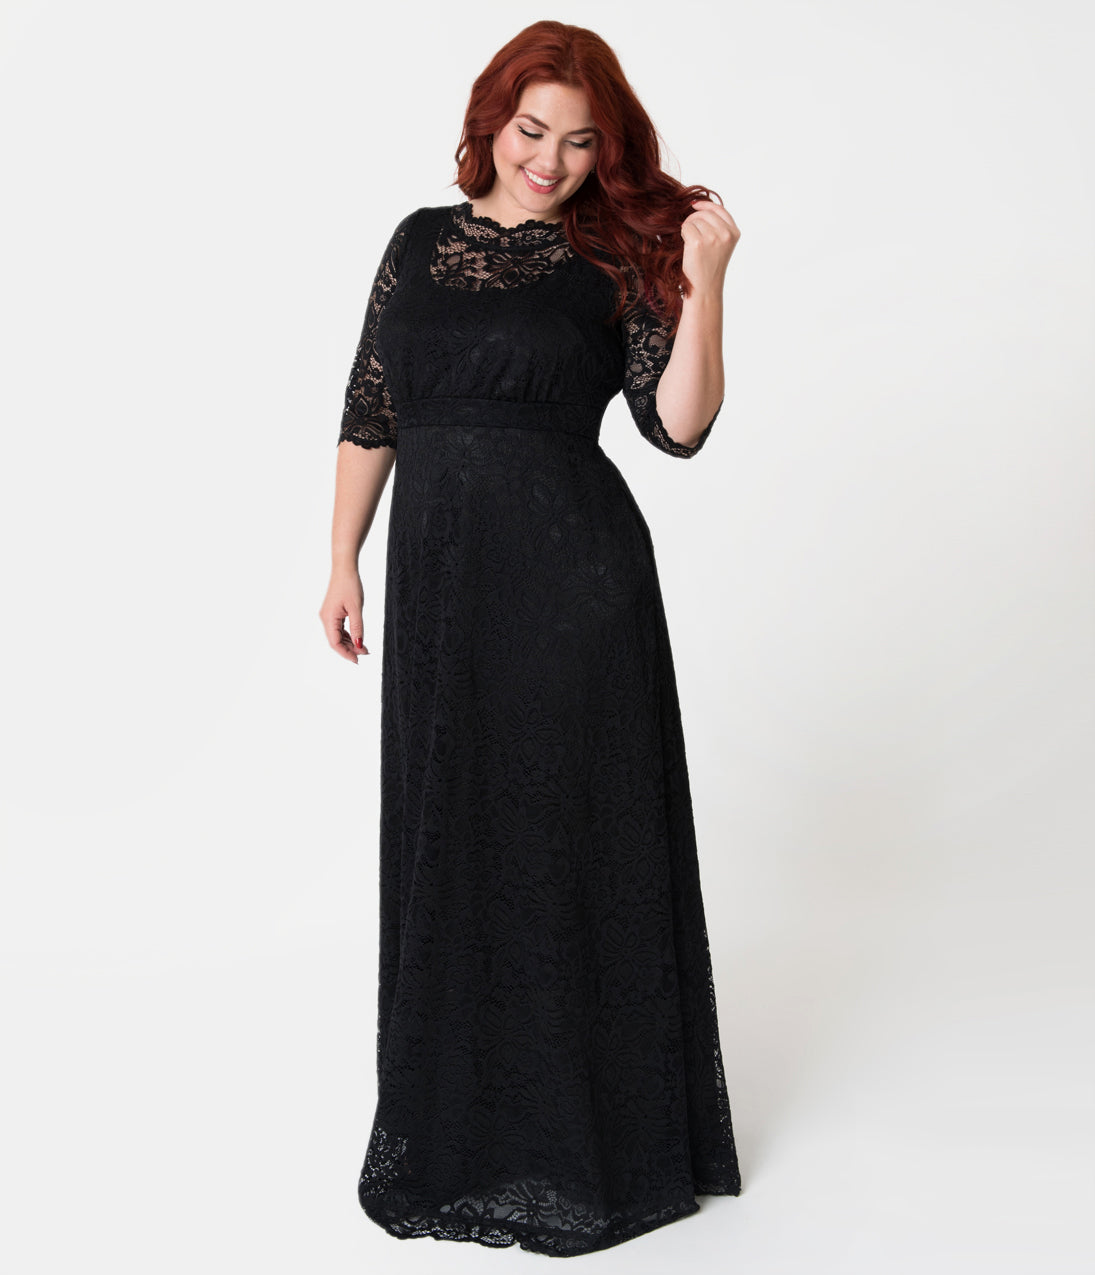 1950s Style Cocktail Dresses & Gowns Plus Size Black Scalloped Floral Lace Sleeved Leona Gown $190.00 AT vintagedancer.com